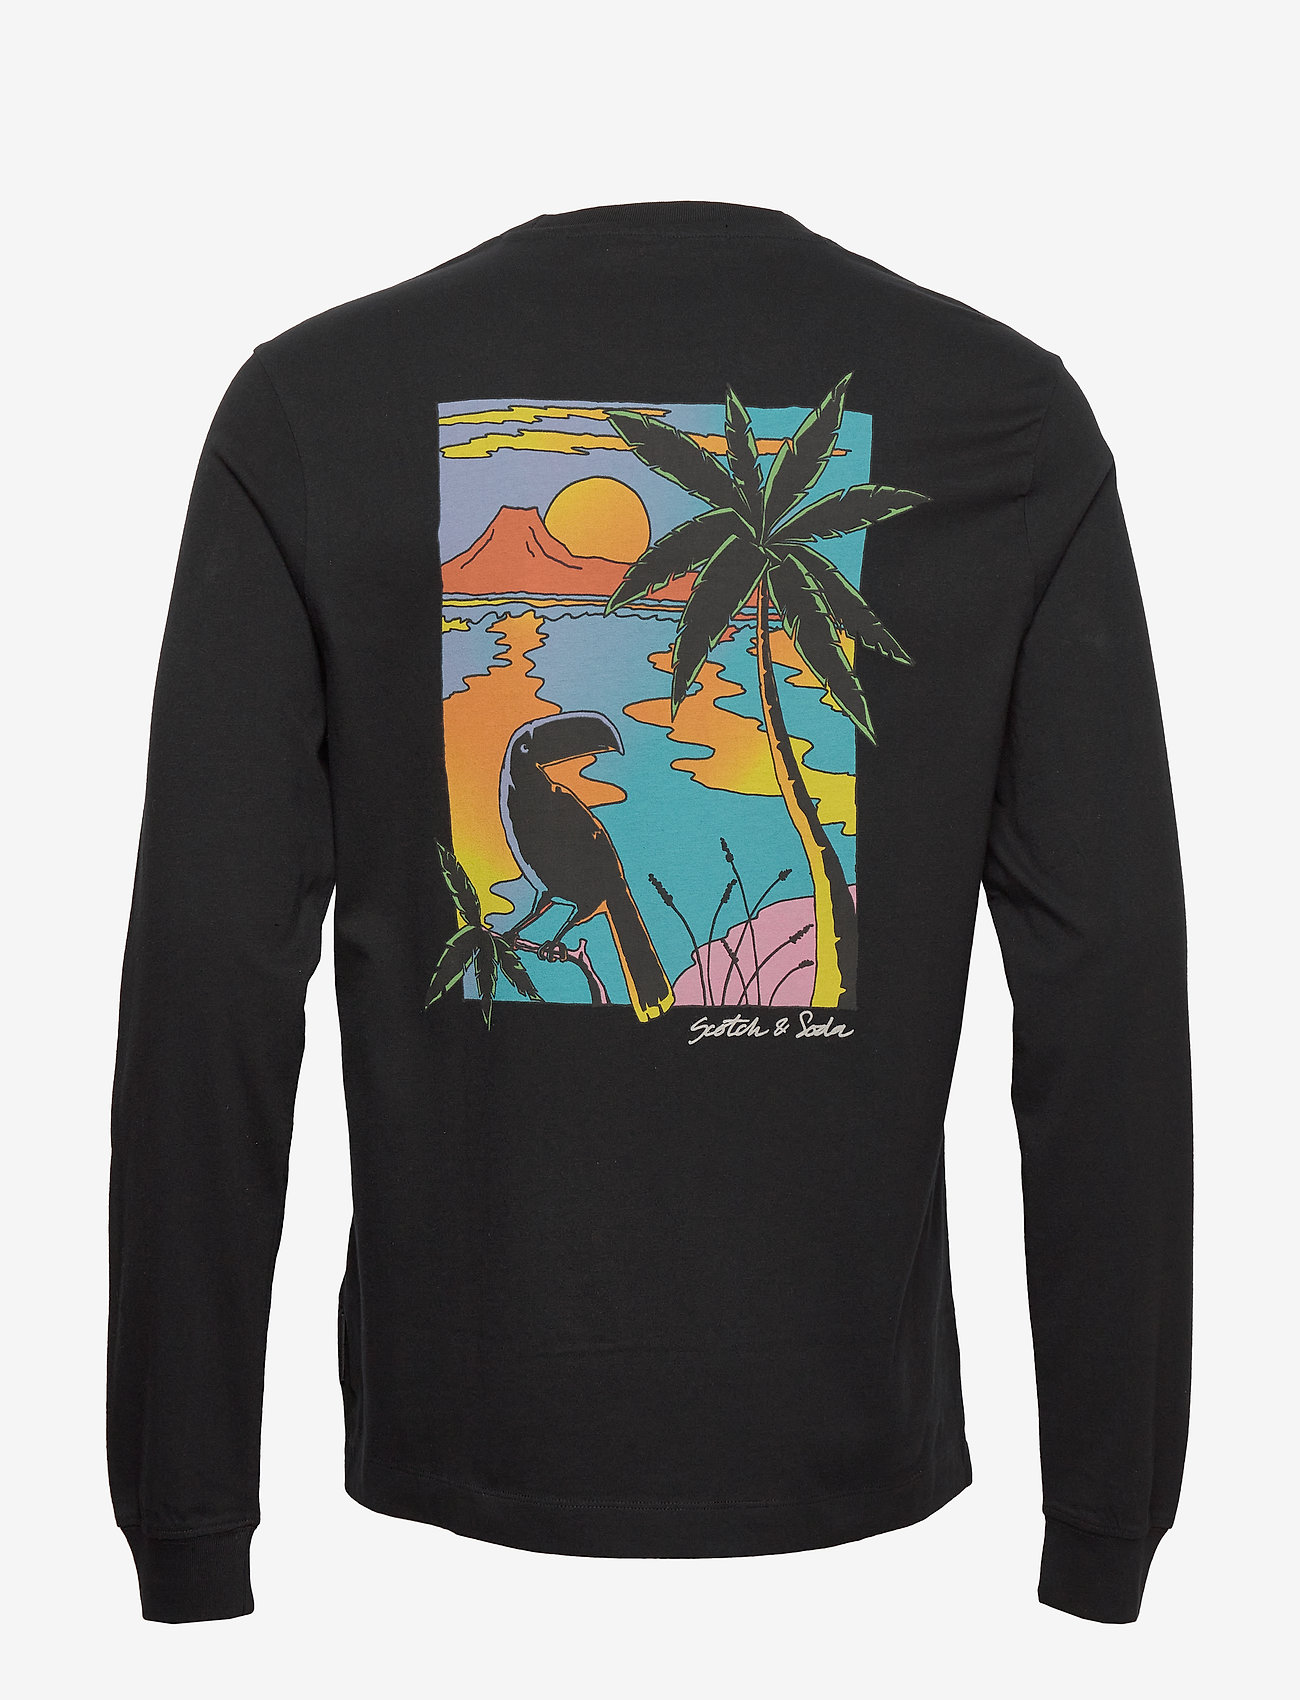 Scotch & Soda - Longsleeve crewneck tee with artworks - basic t-shirts - black - 1